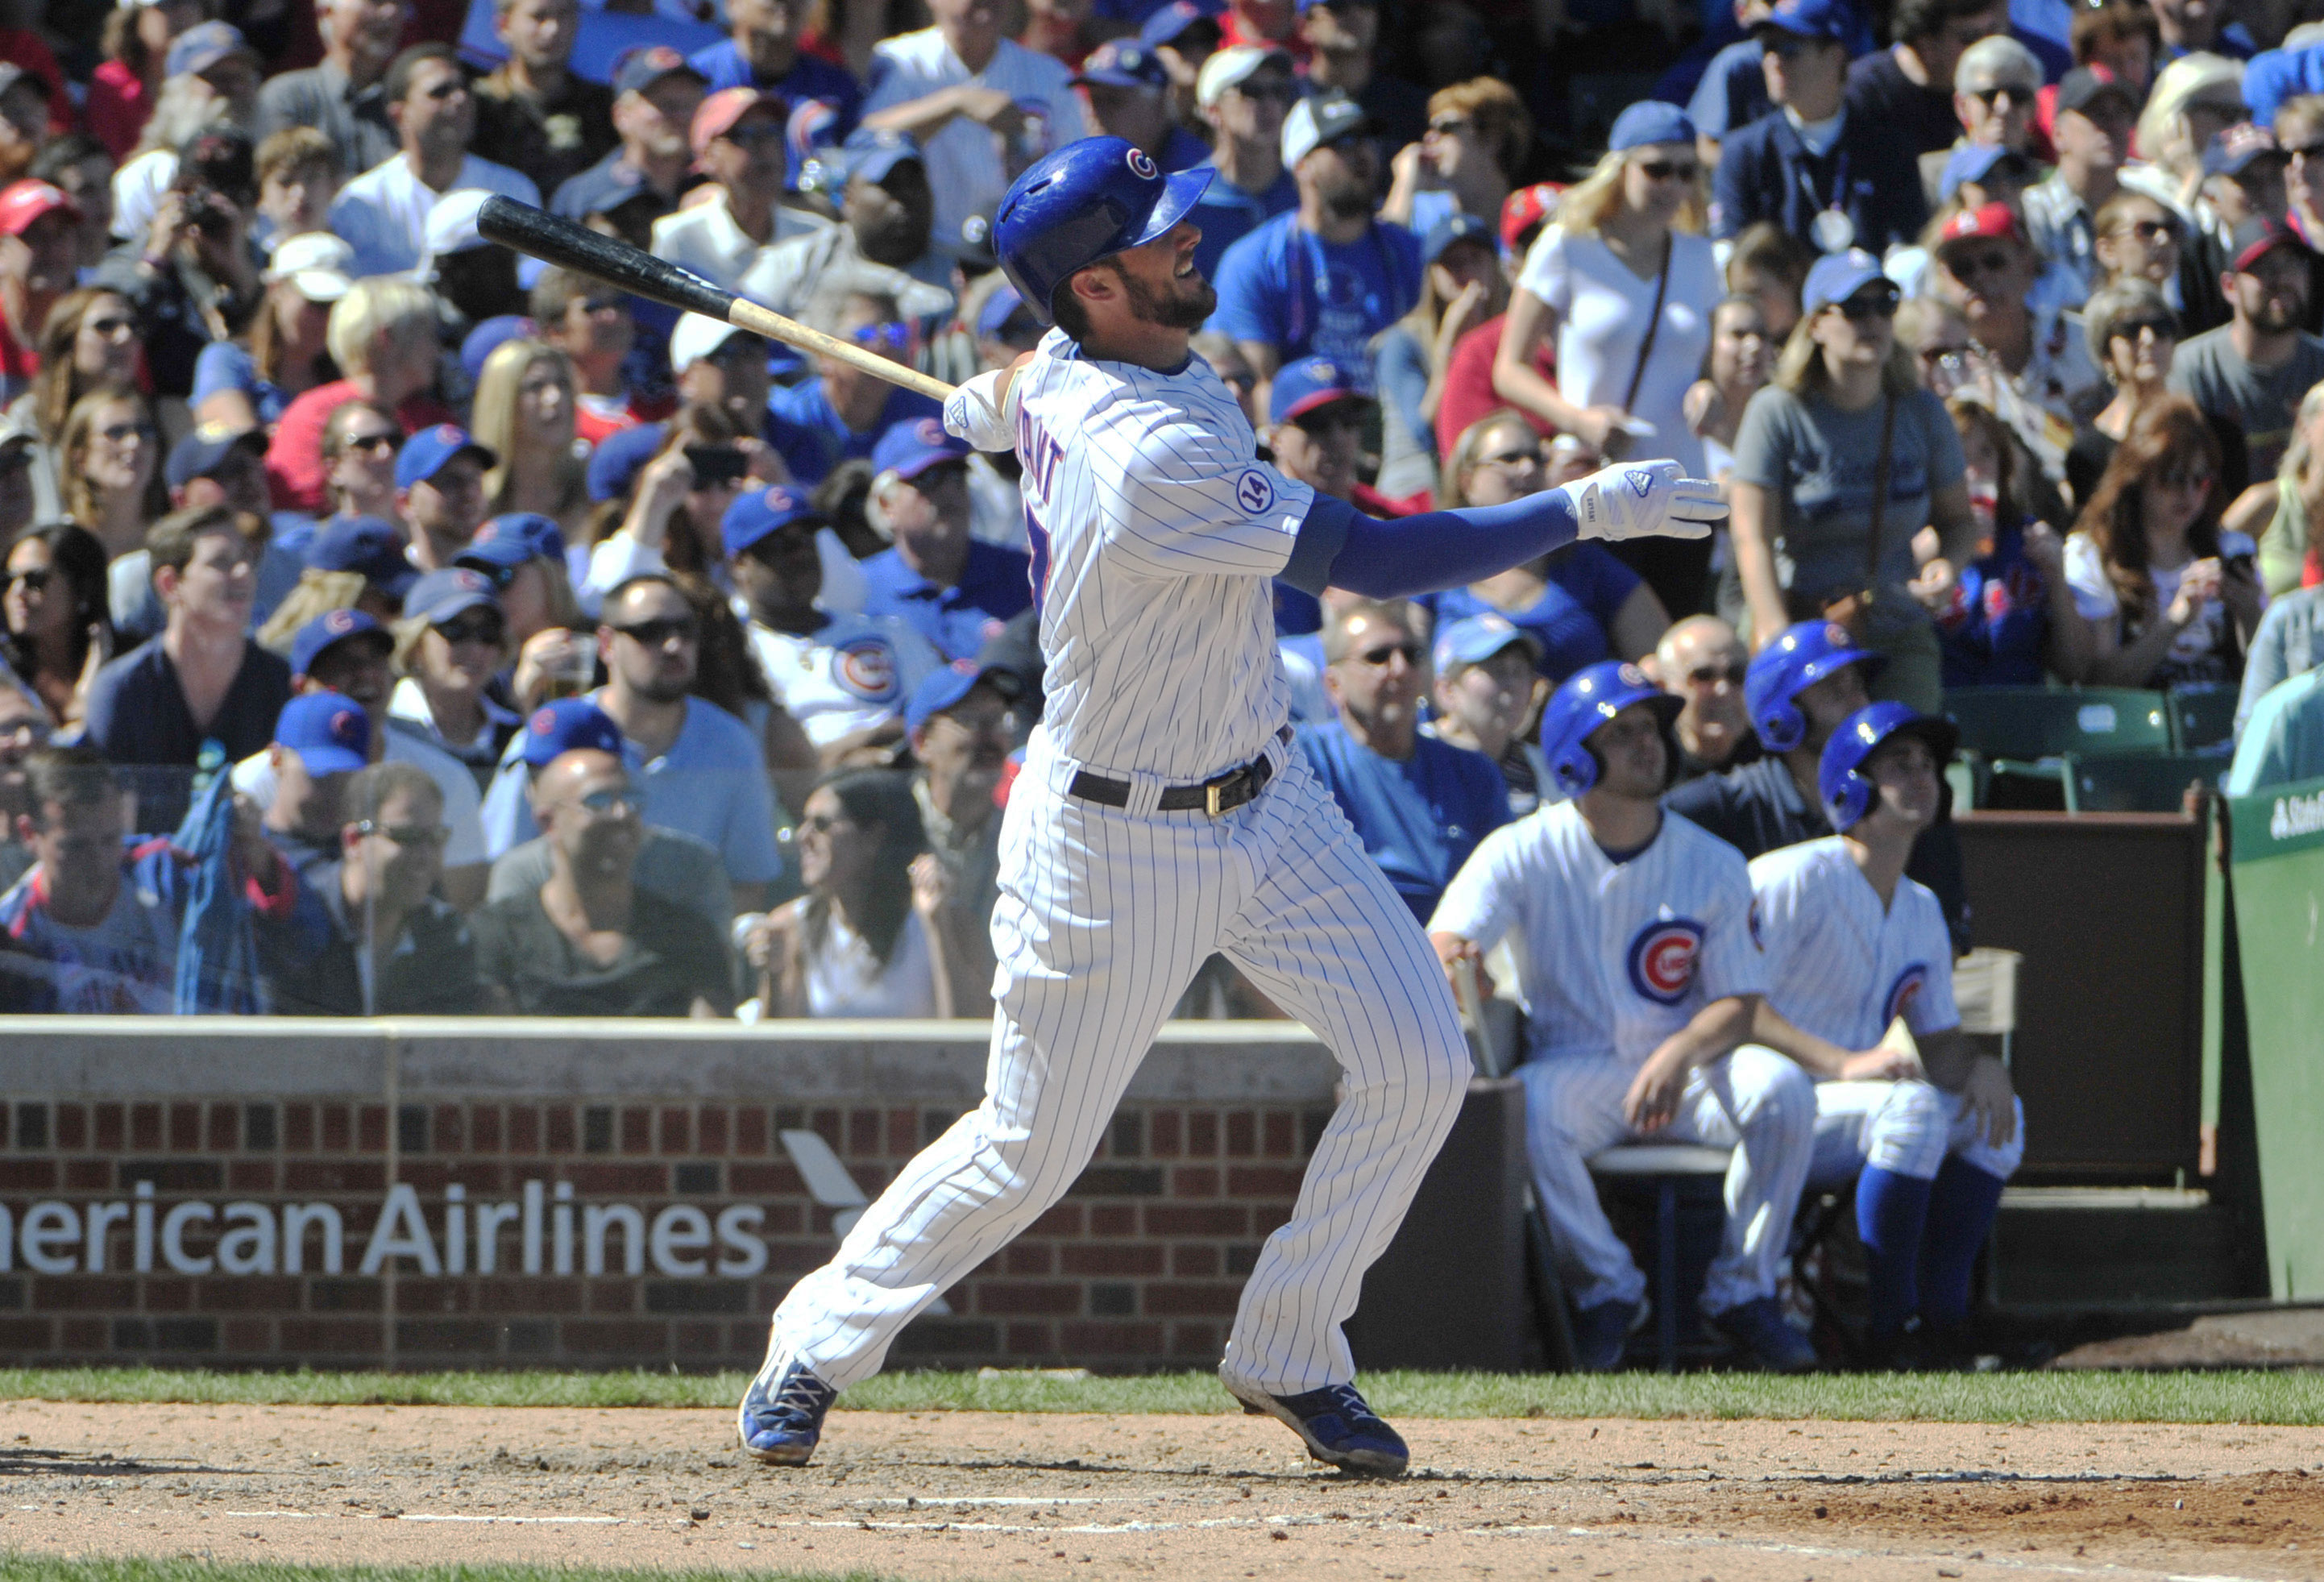 Chicago Cubs' Kris Bryant (17) watches his home run against the St. Louis Cardinals during the fifth inning of a baseball game, Saturday, Sept. 19, 2015, in Chicago. (AP Photo/David Banks)